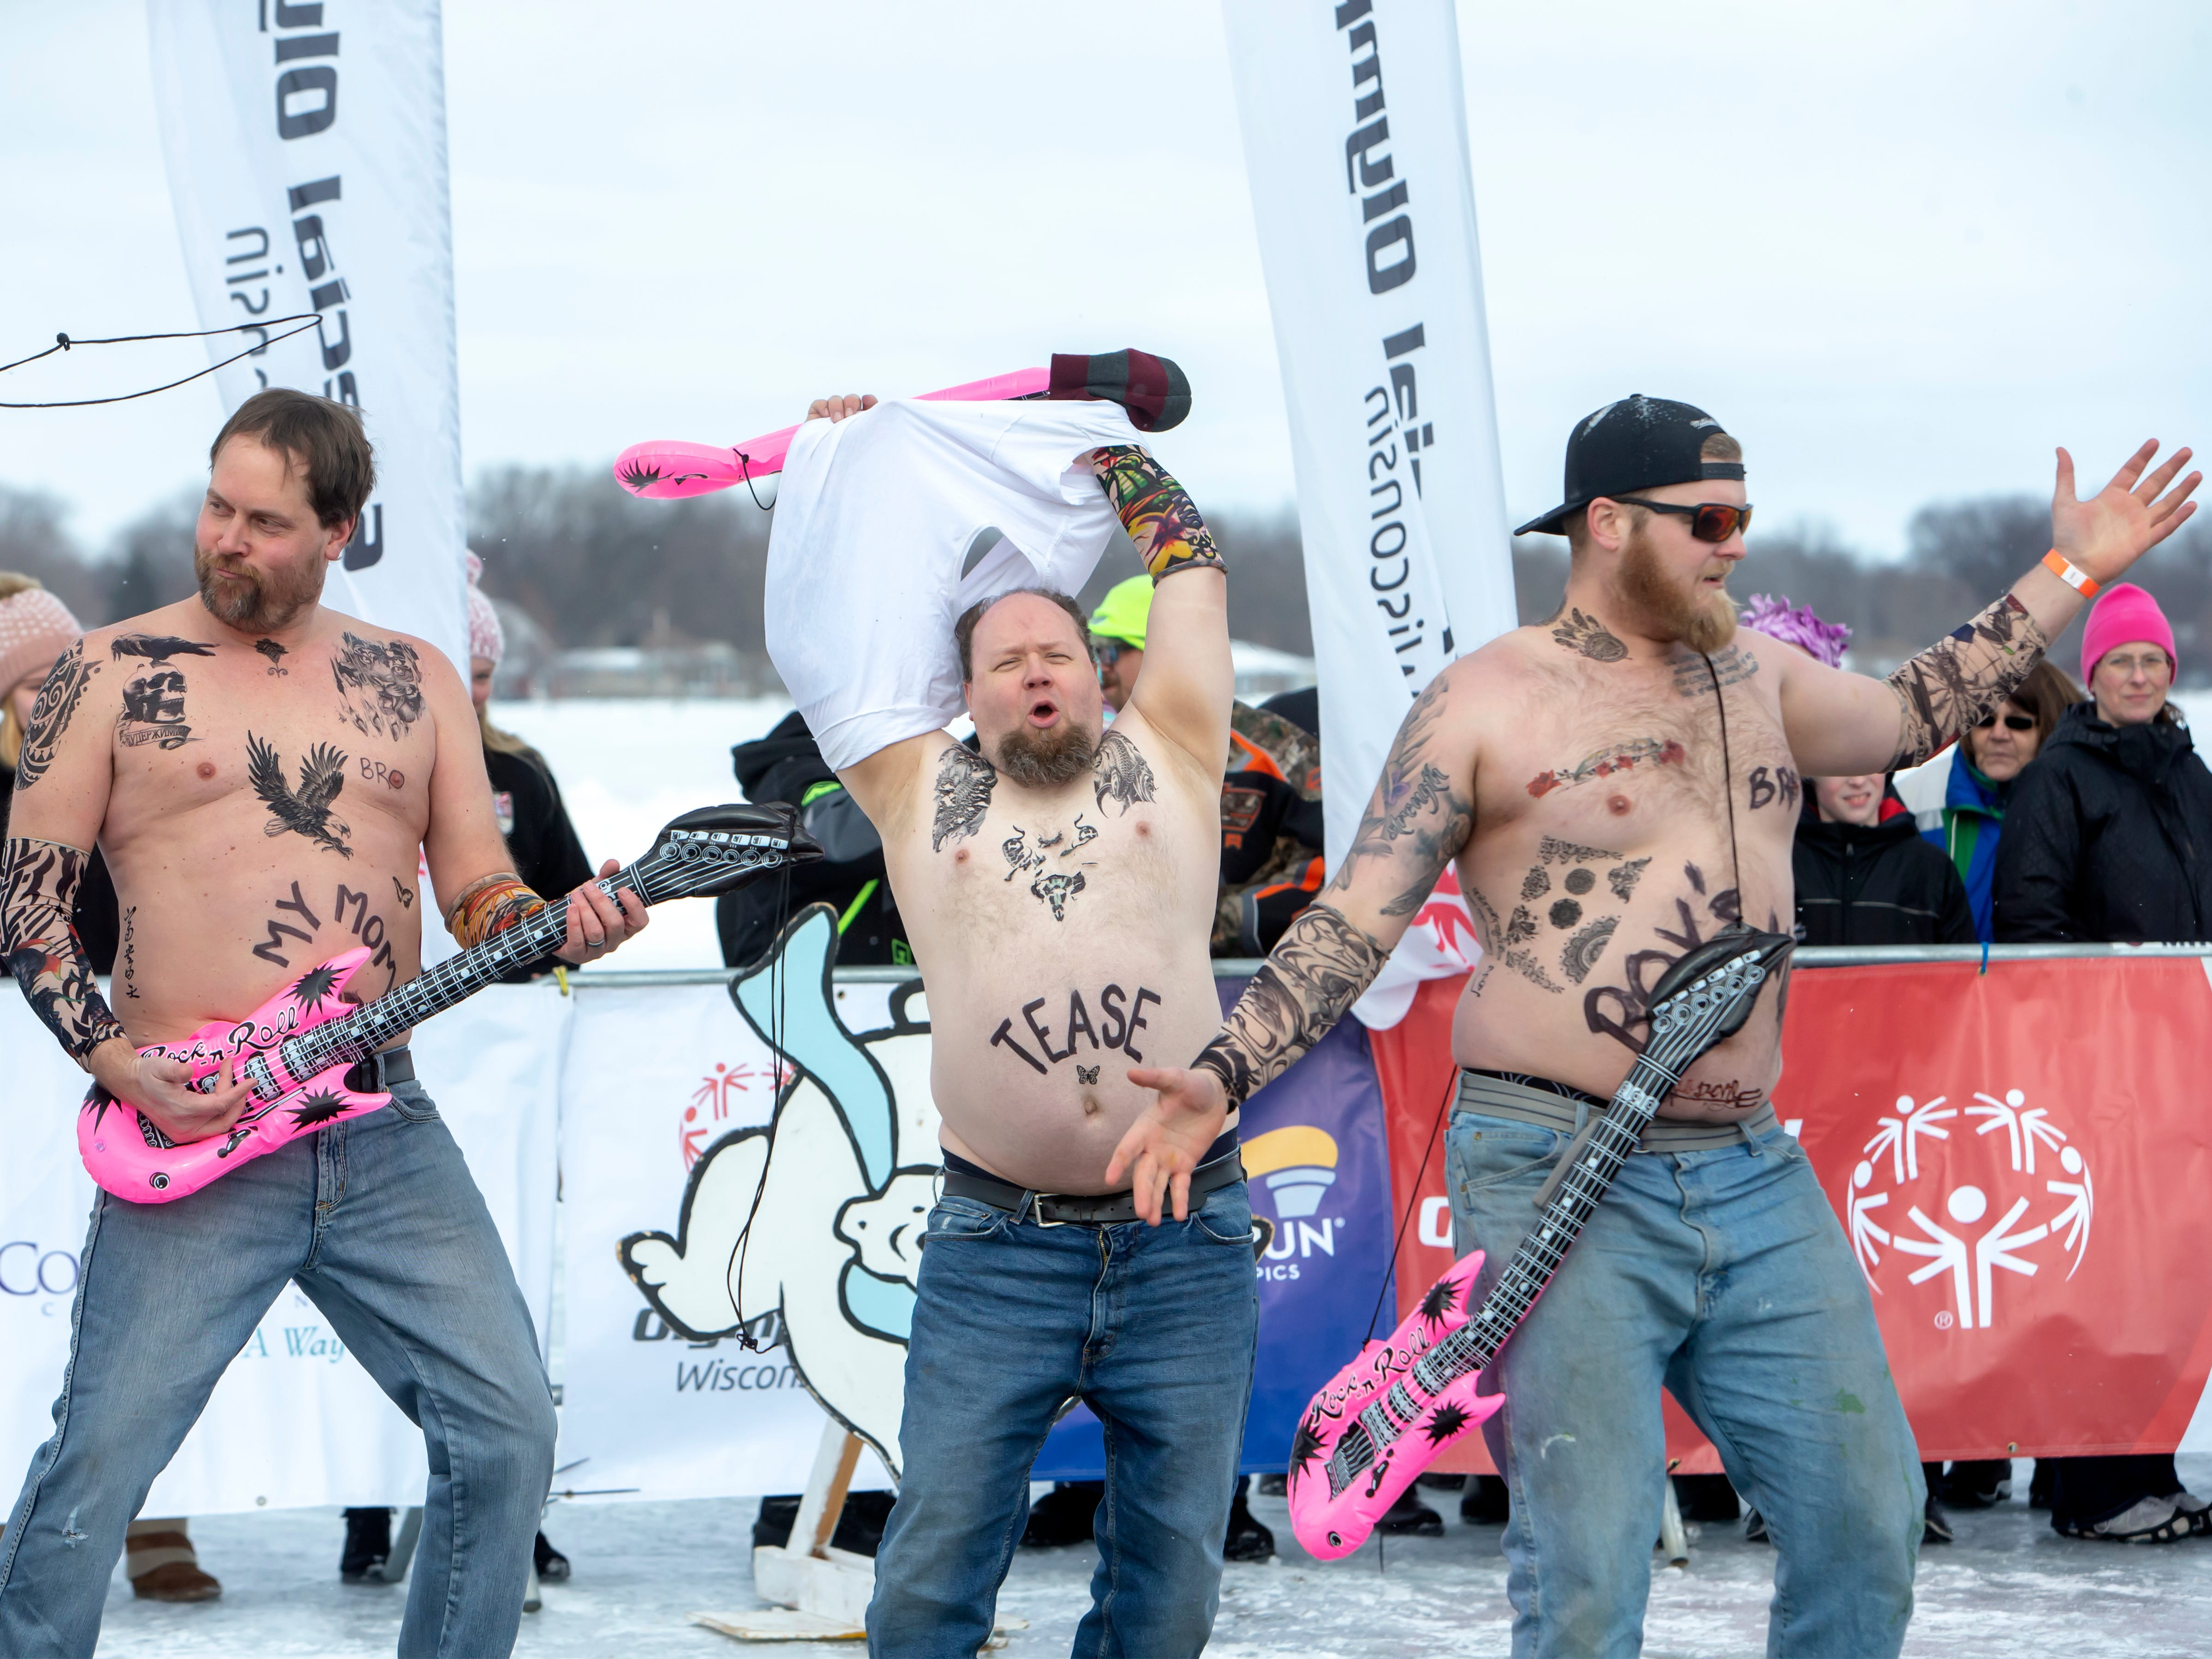 Pete's Garbage rock stars prepare to take the plunge during the Special Olympics Wisconsin Polar Plunge in Oshkosh, Wis., on Saturday, February 16, 2019, at Miller's Bay in Menominee Park.